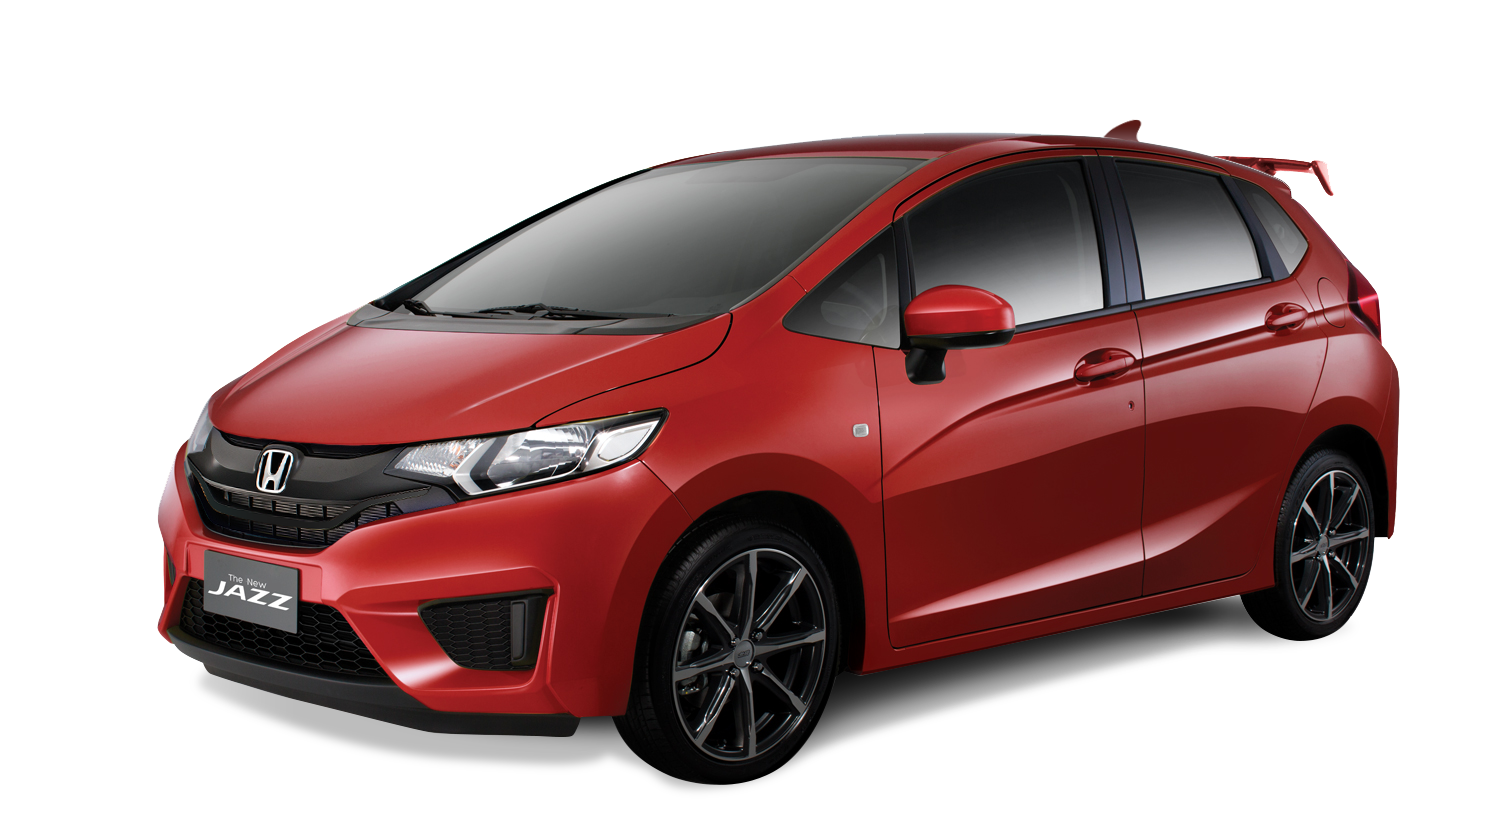 Honda Jazz 1.5 V CVT MUGEN Limited Edition